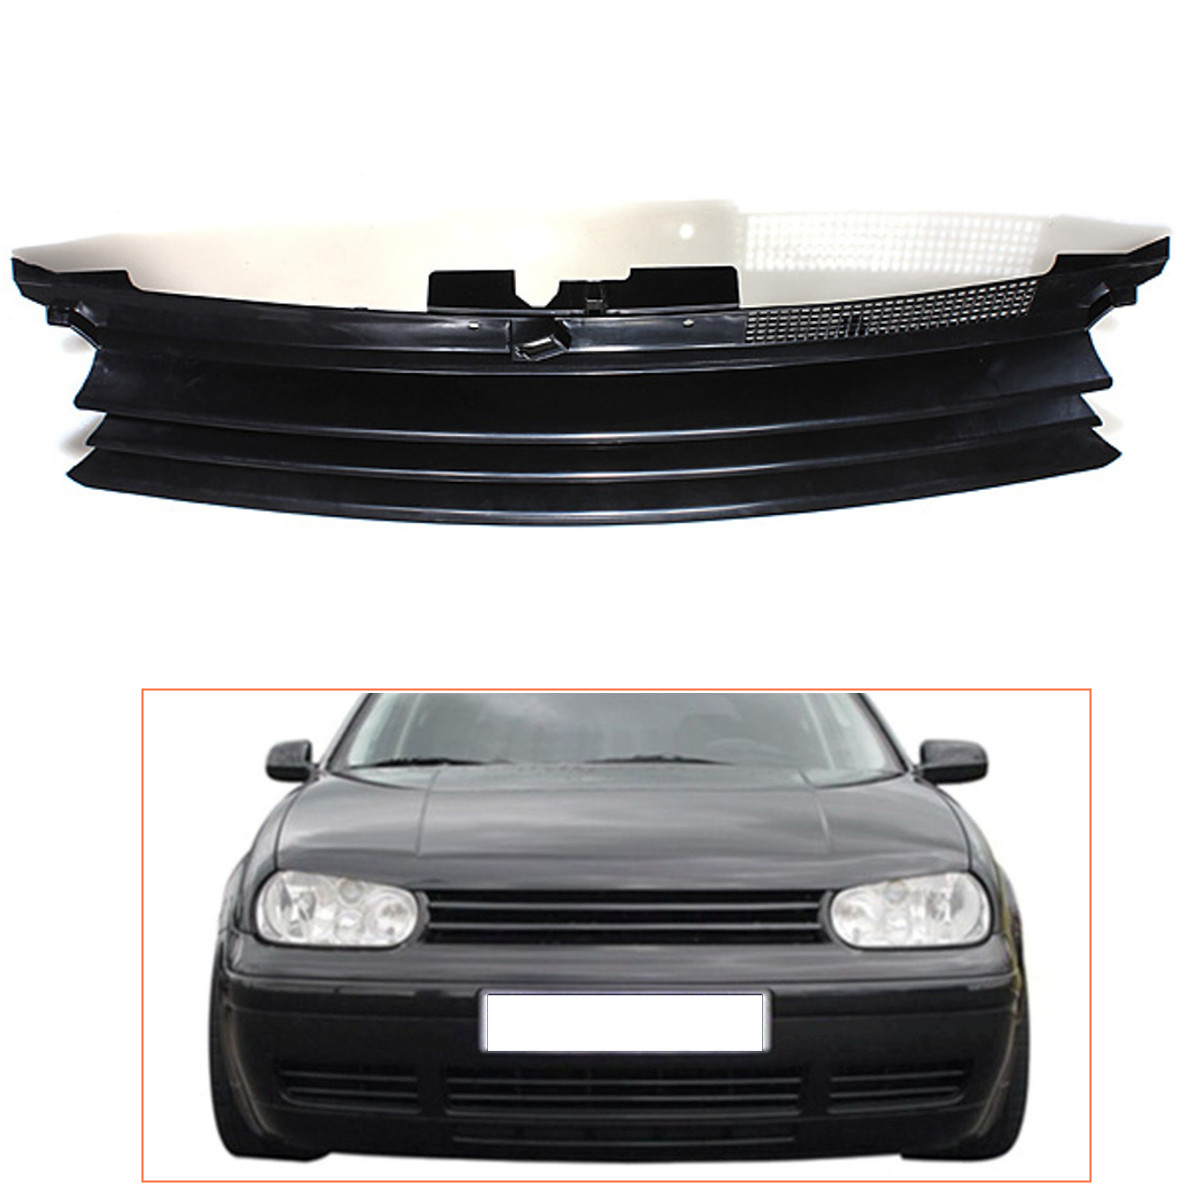 Badgeless Debadged Car Front Hood Sports Grille Grill for VW GOLF 4 MK4 1997-2004 toothbrush family for oral b electric toothbrush head replacement toothbrush base holder case box